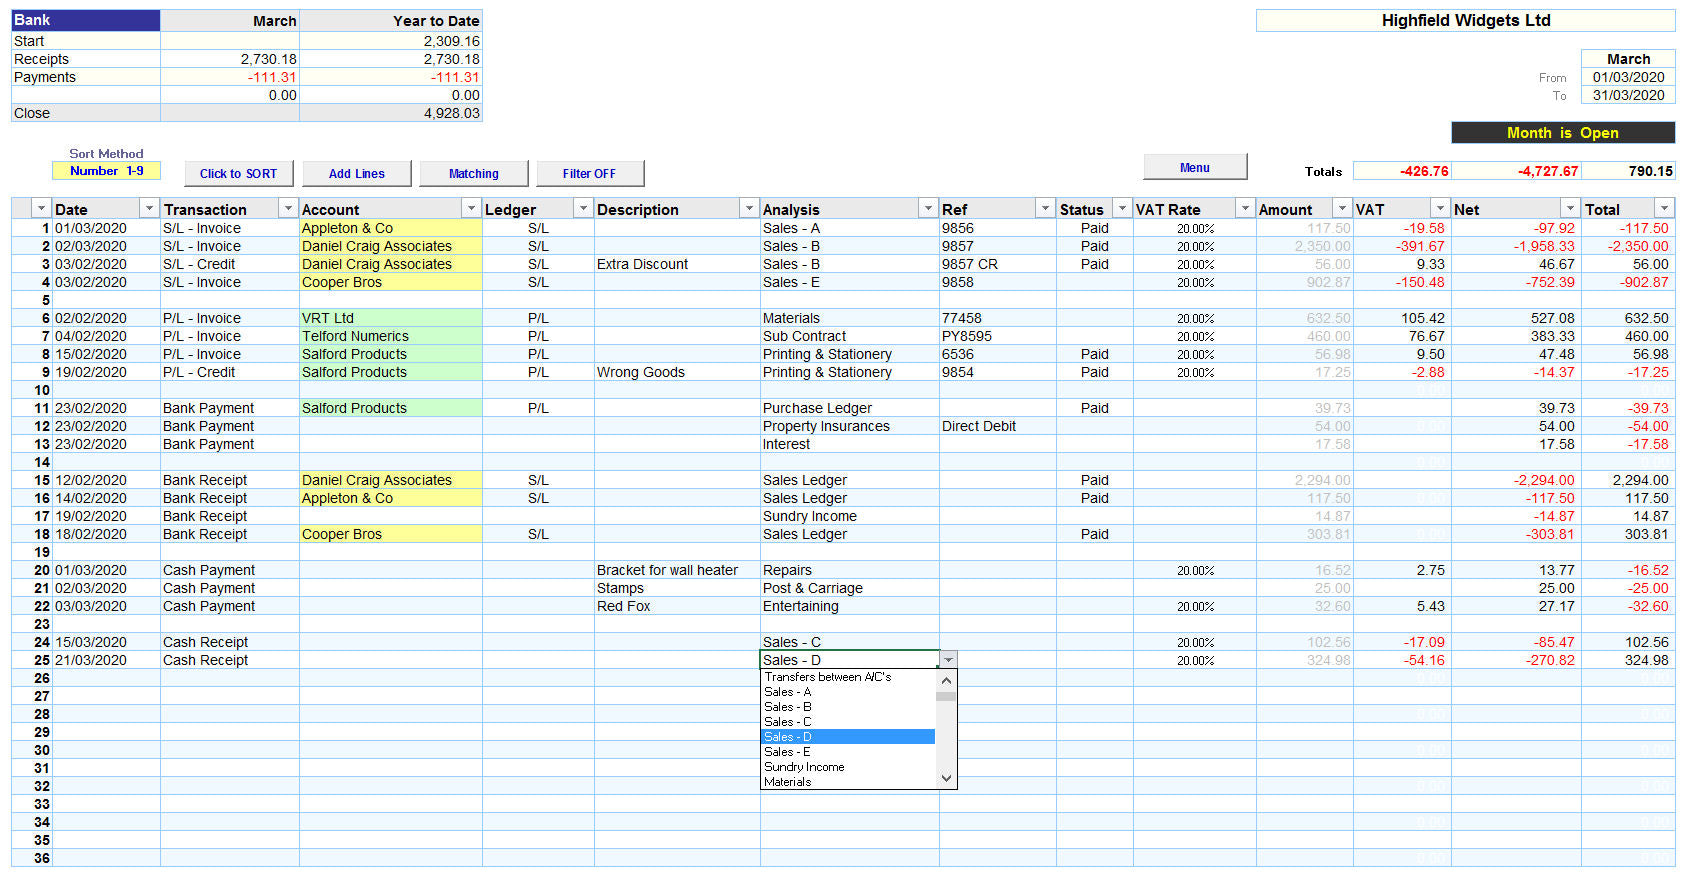 Excel Accounting Spreadsheet Template with Analysis